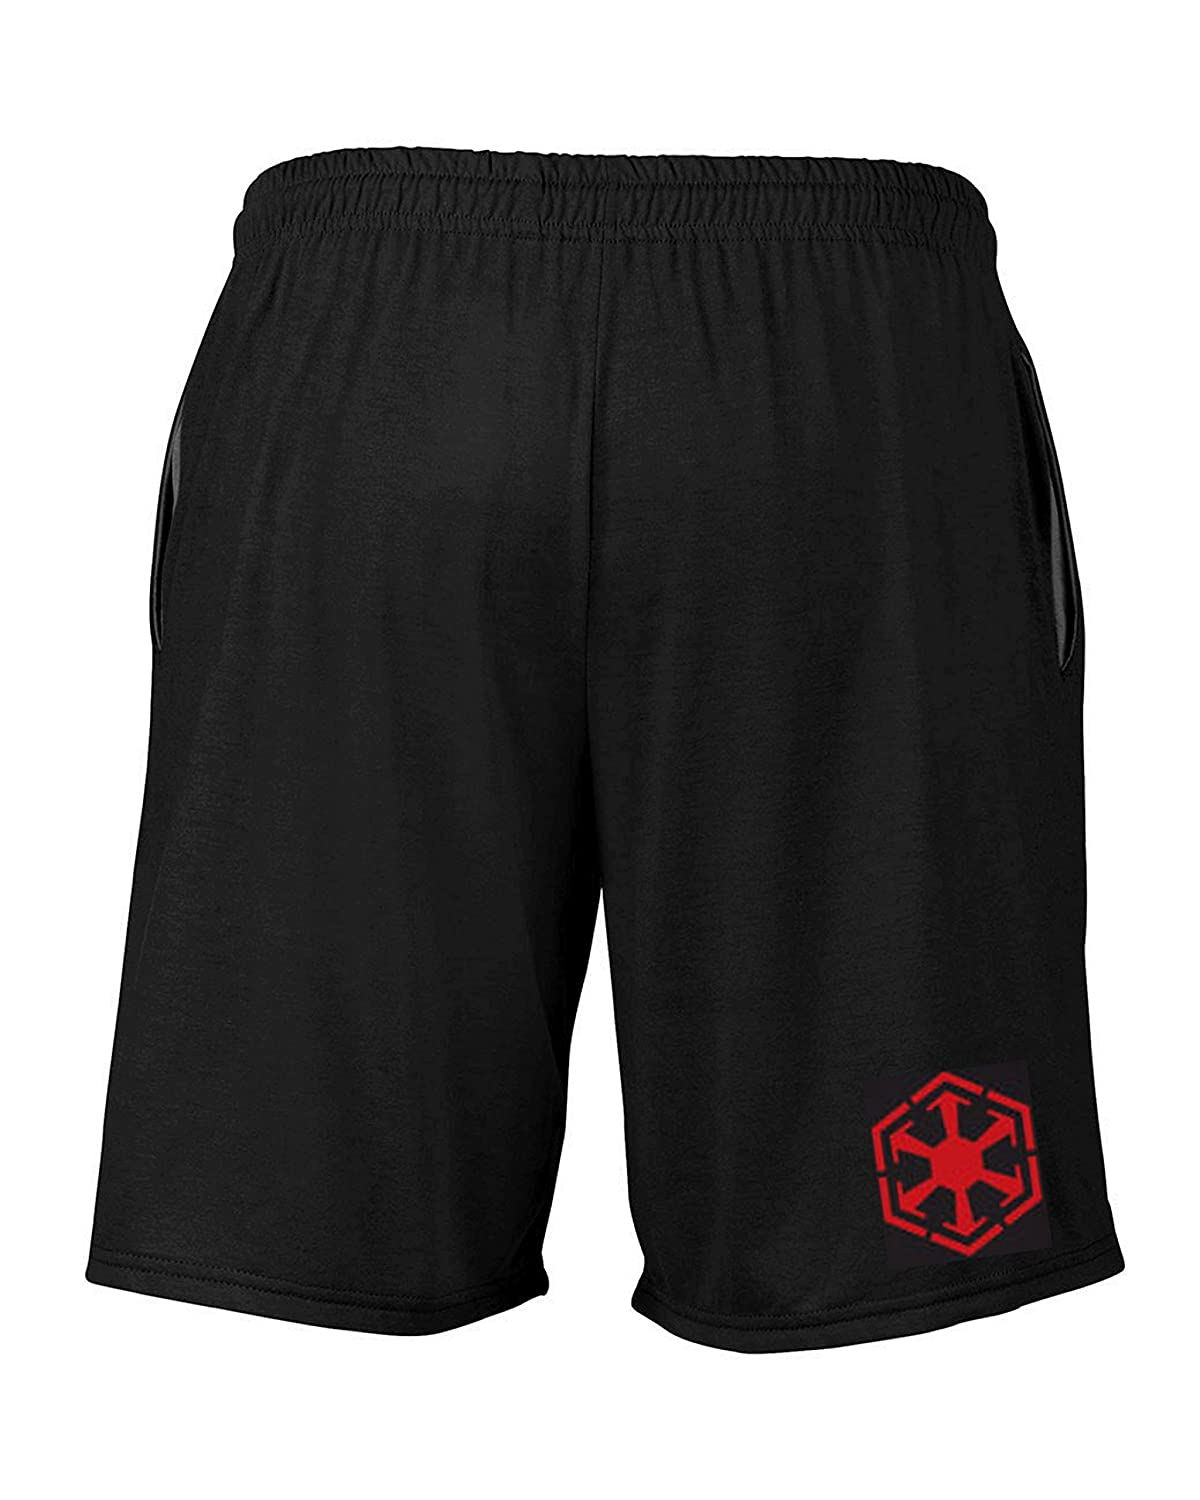 Wallys Custom Apparel Mens Limited Edition Sith Shorts Black Sizes Small 2XL